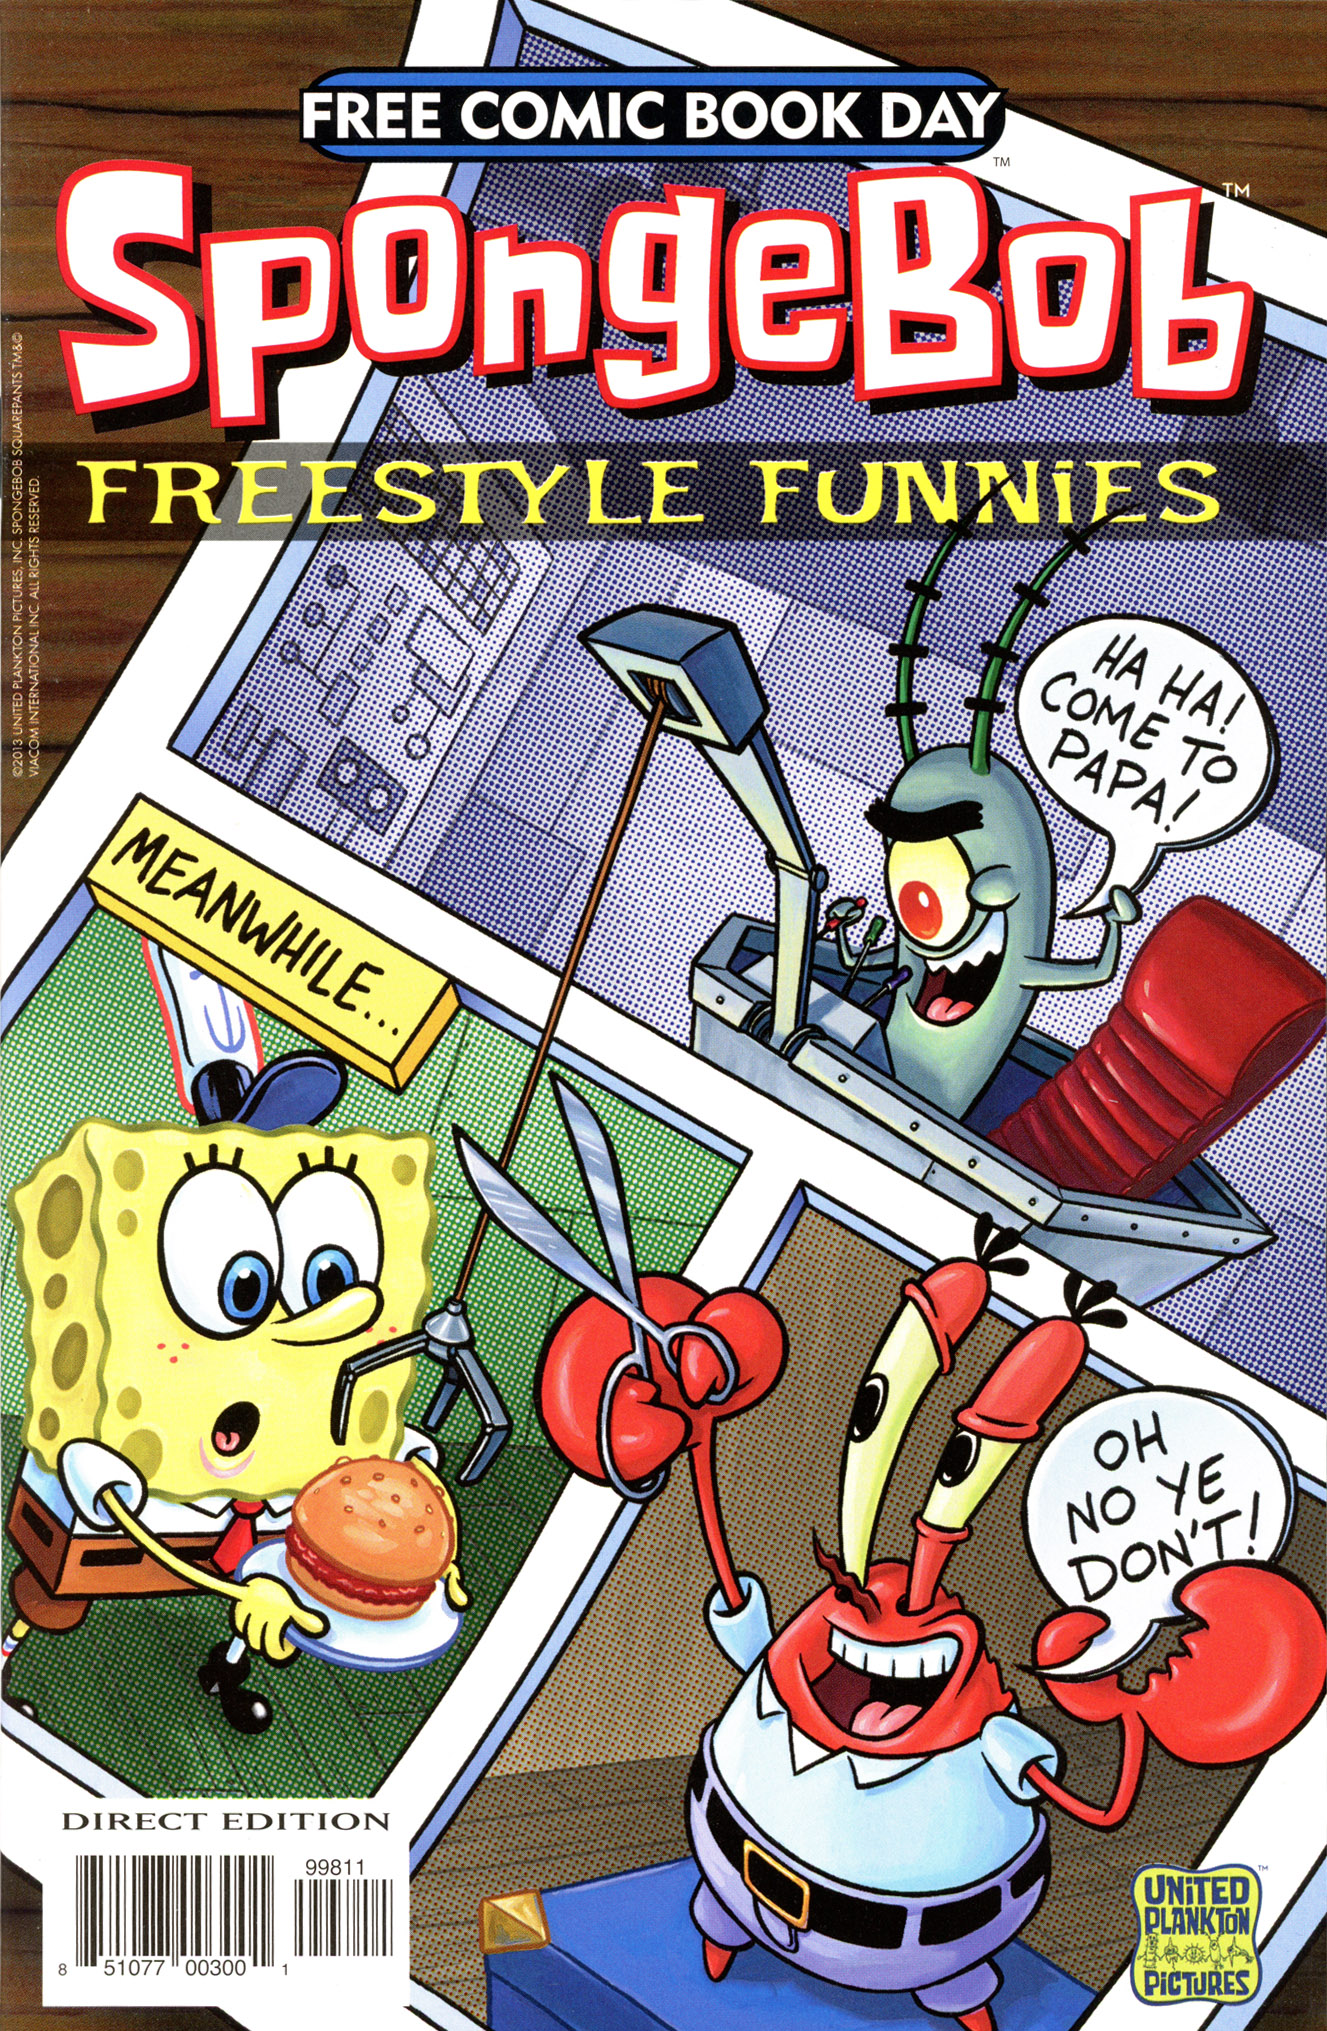 Free Comic Book Day 2013: Freestyle Funnies